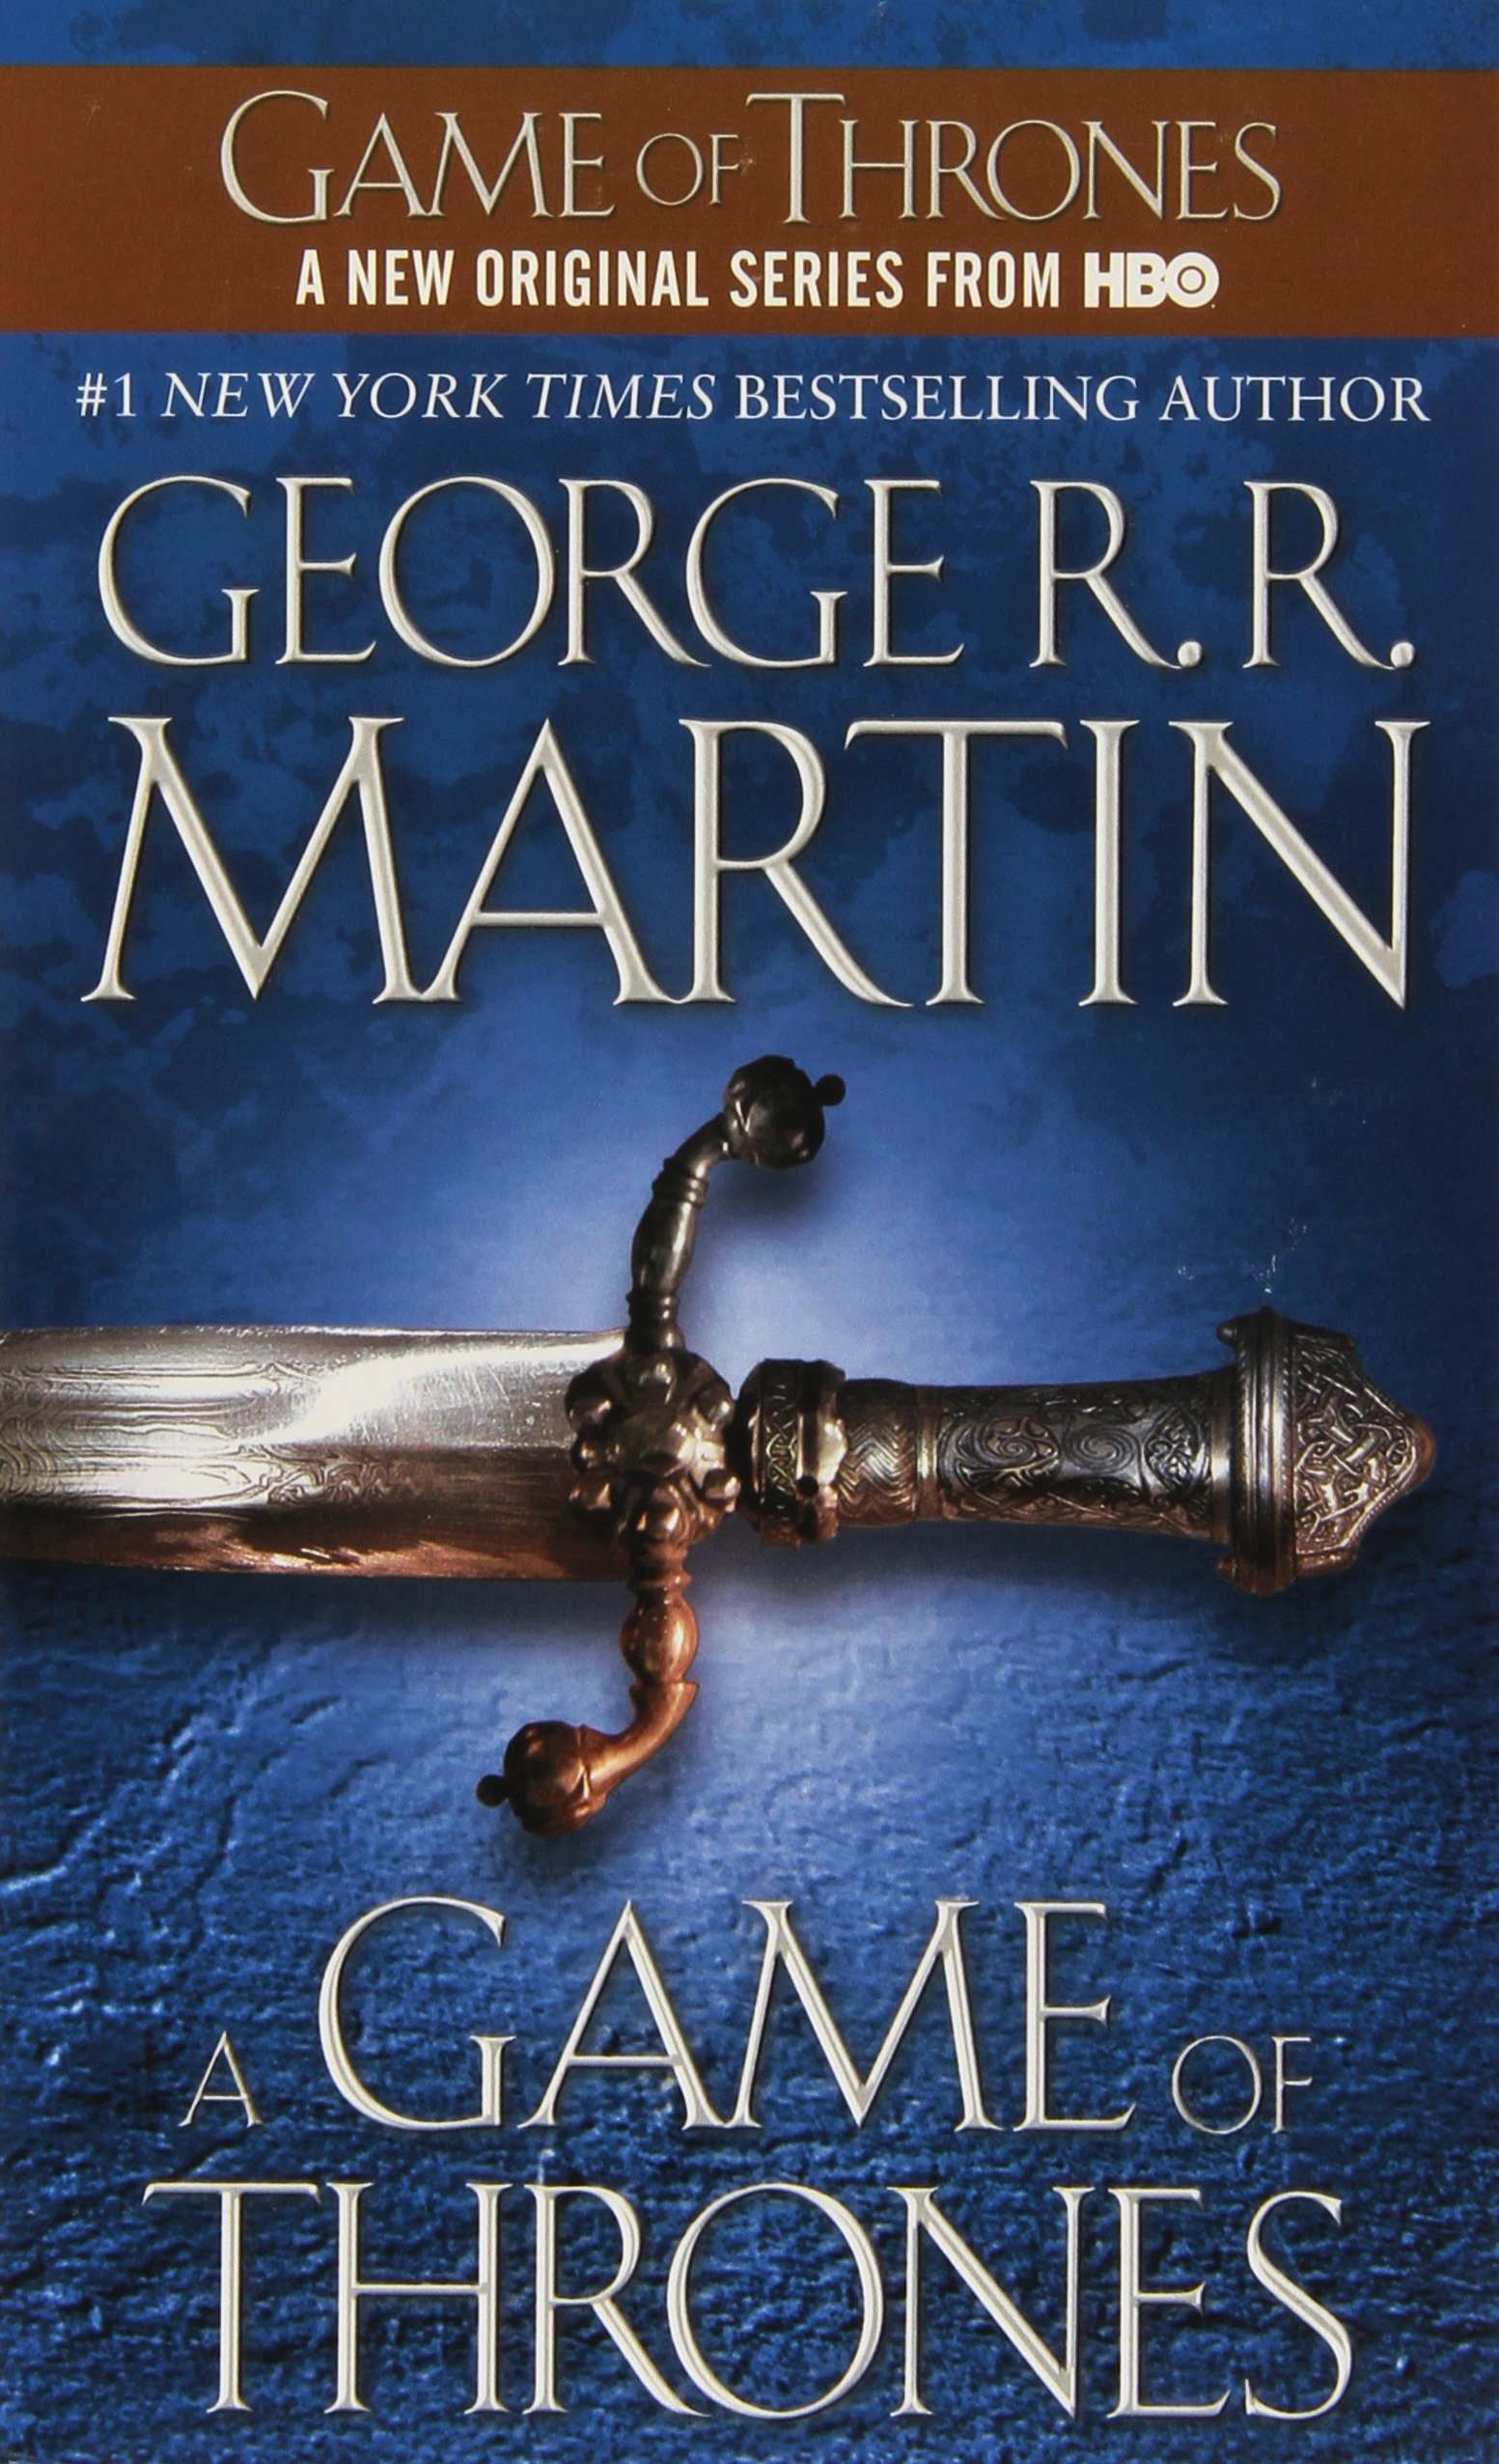 Image result for a game of thrones book cover